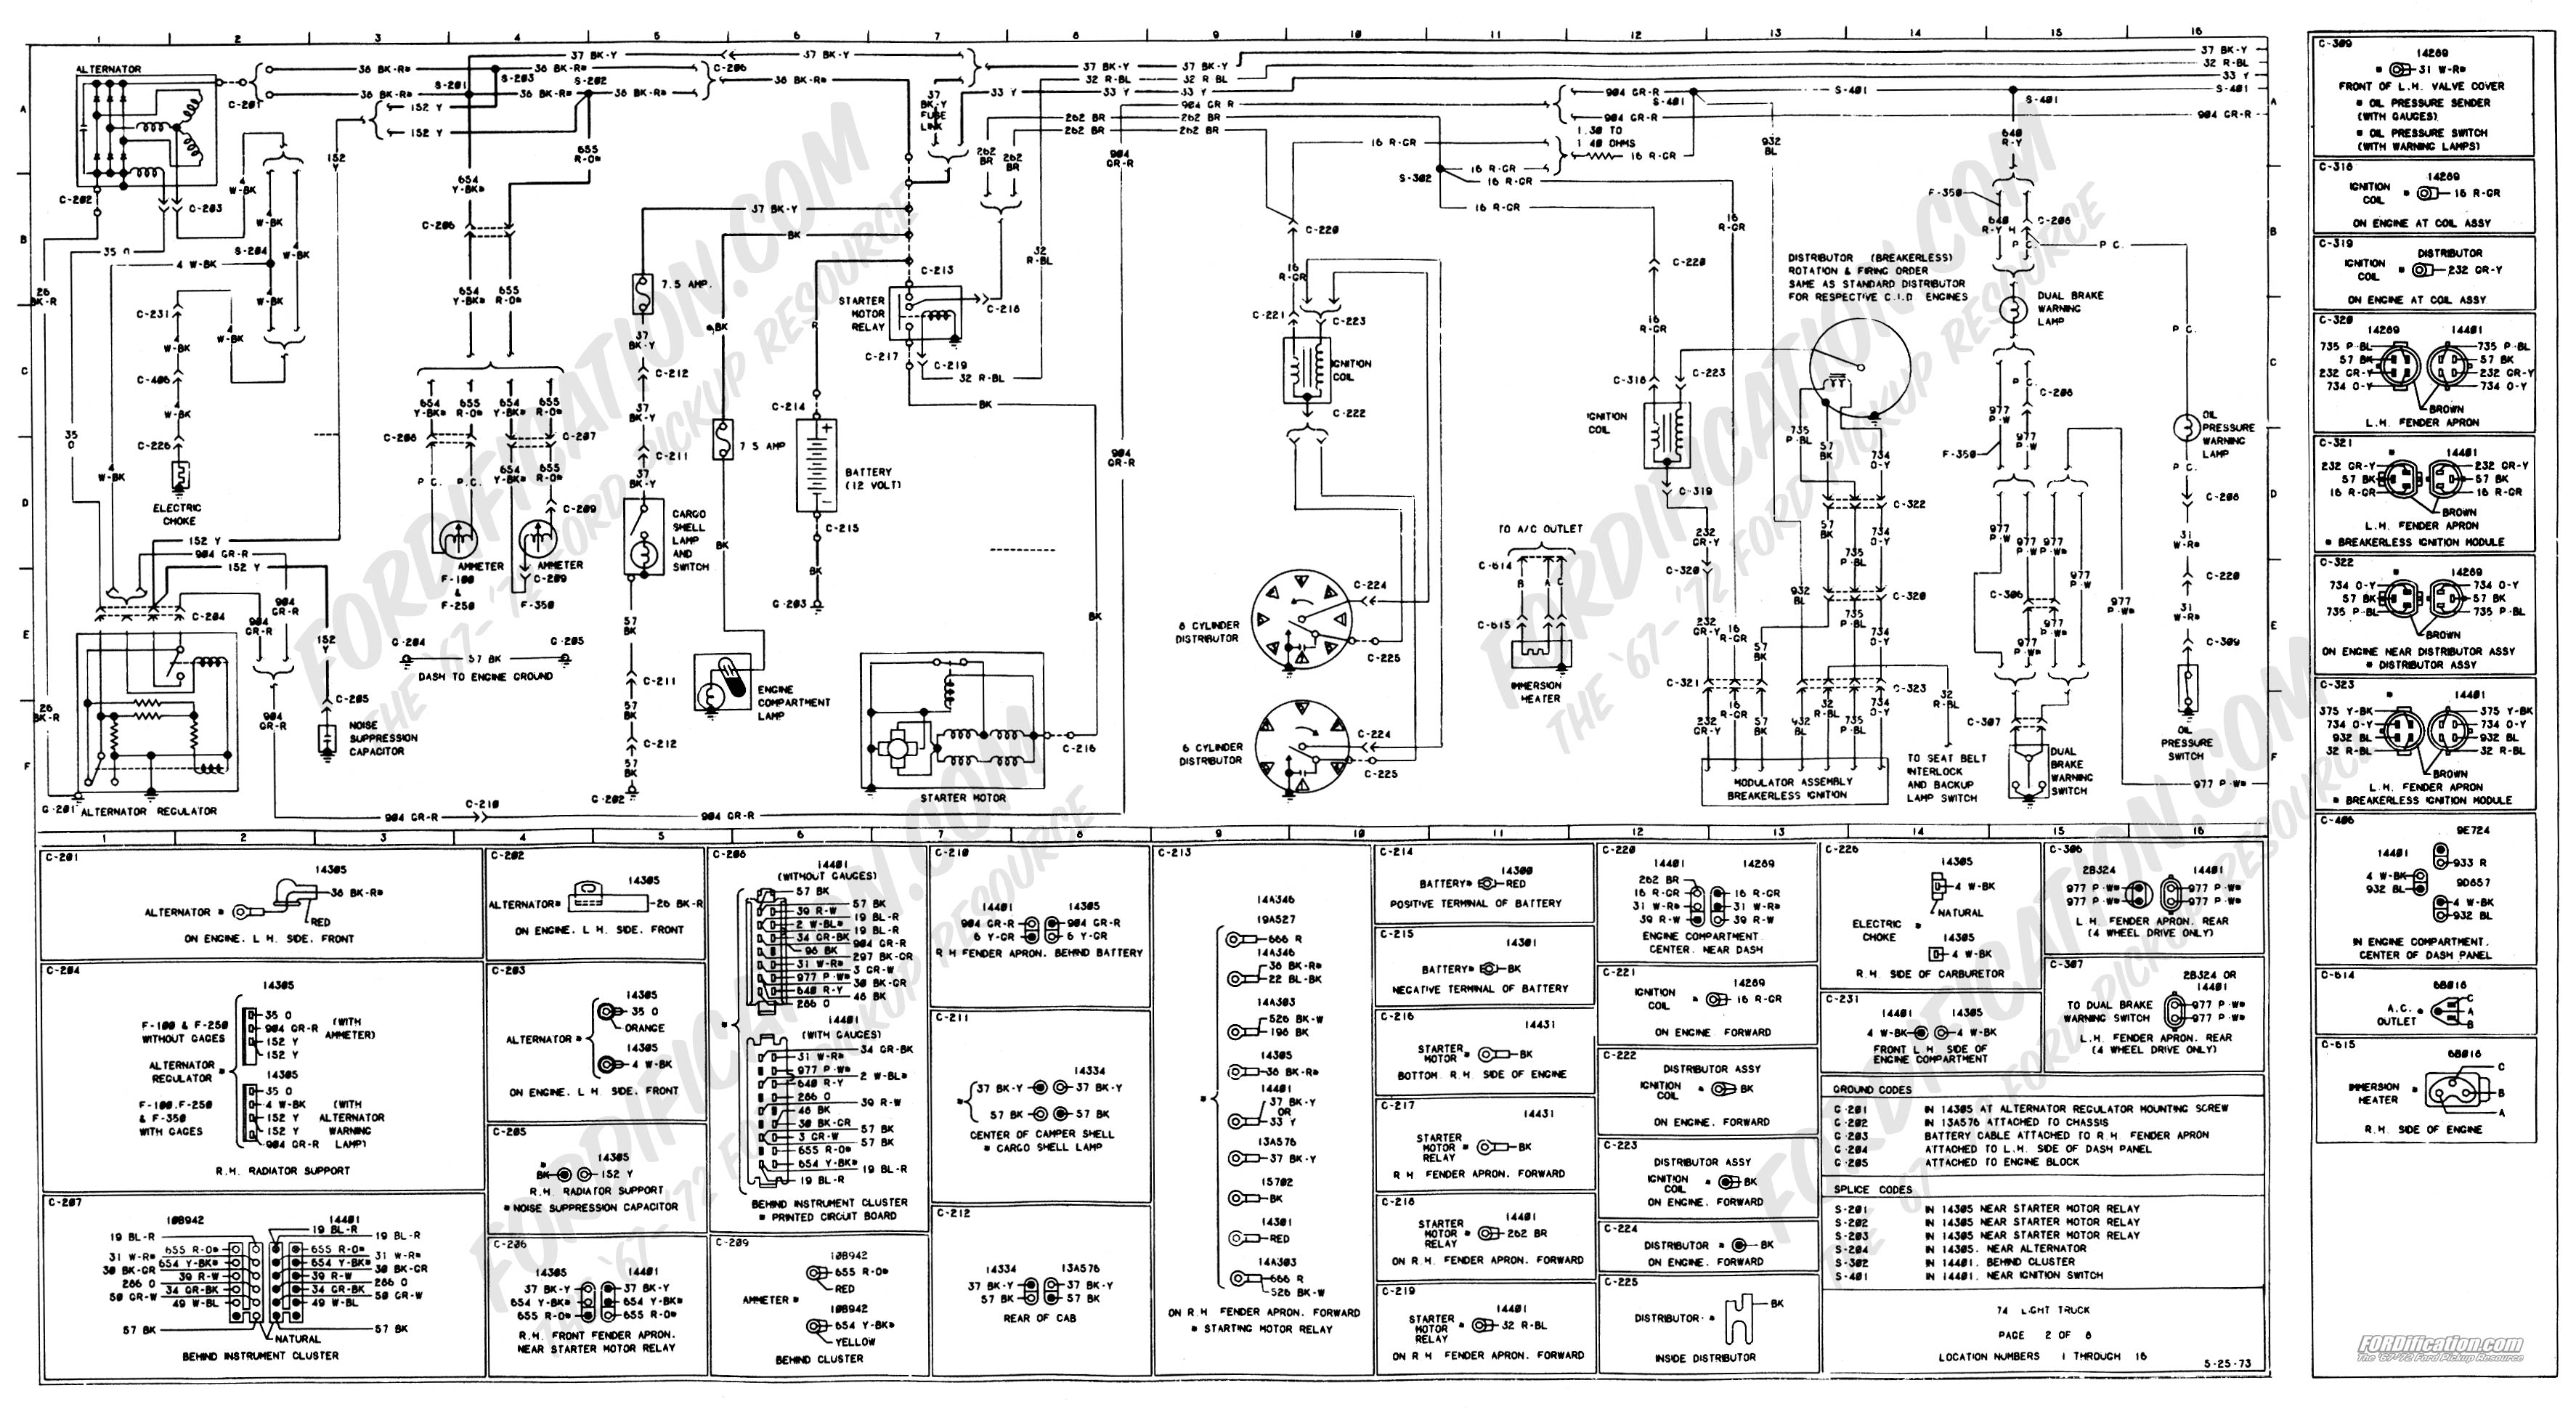 Wiring Schematics Library Dt1 250 Dt1b Enduro Motorcycle Diagram Page 02